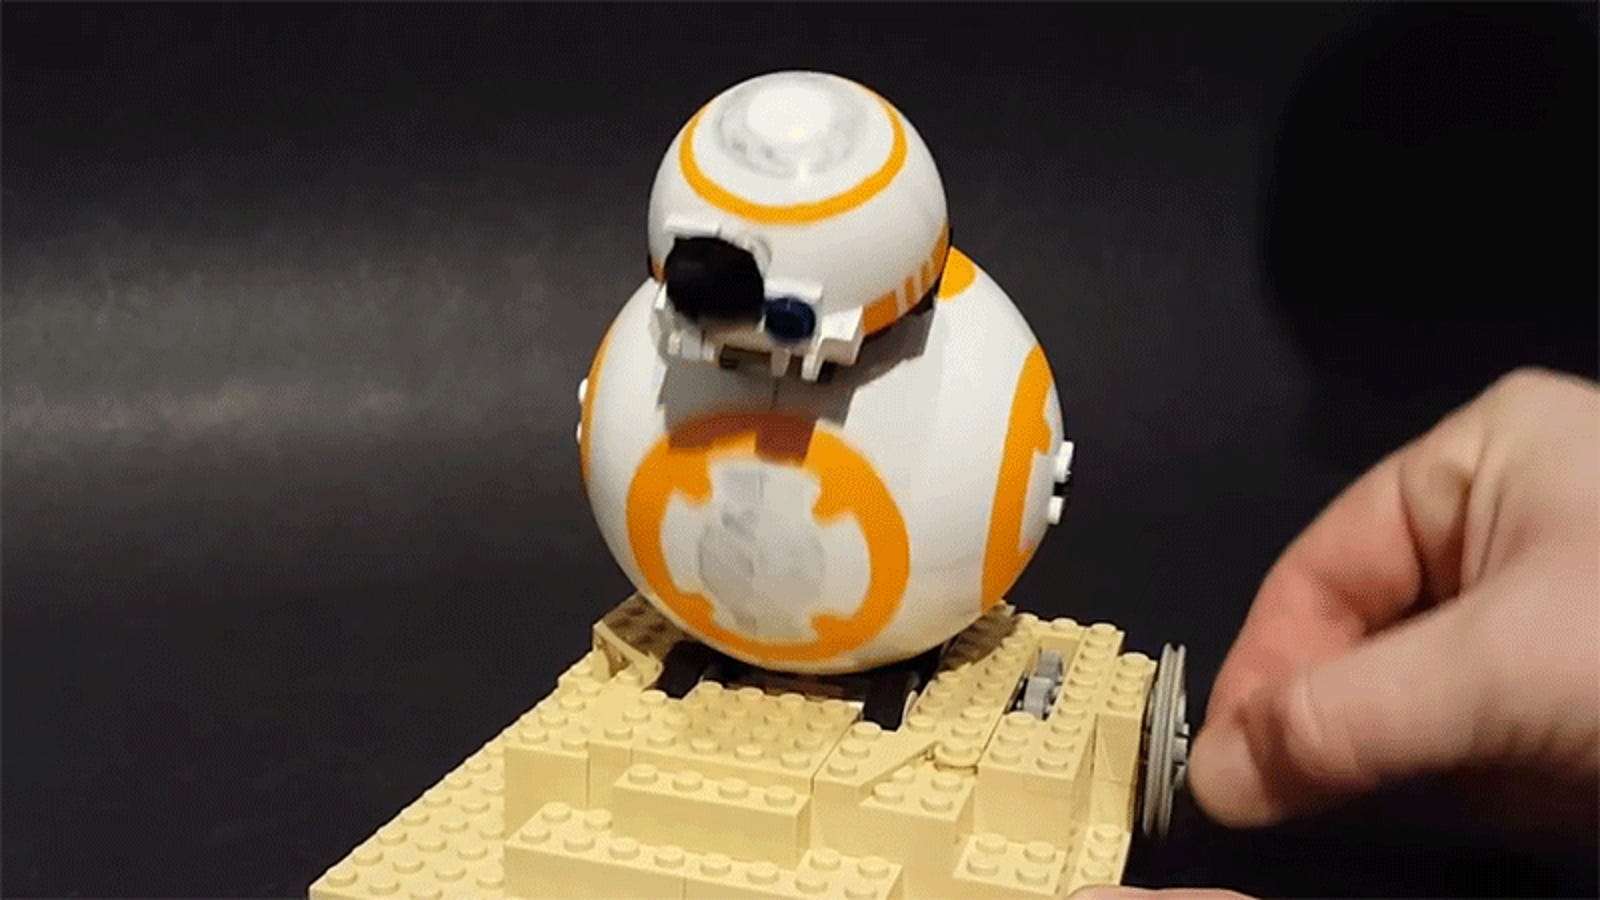 A Clever Star Wars fan Figured Out How to Build a Tiny Rolling BB-8 Using Only Lego